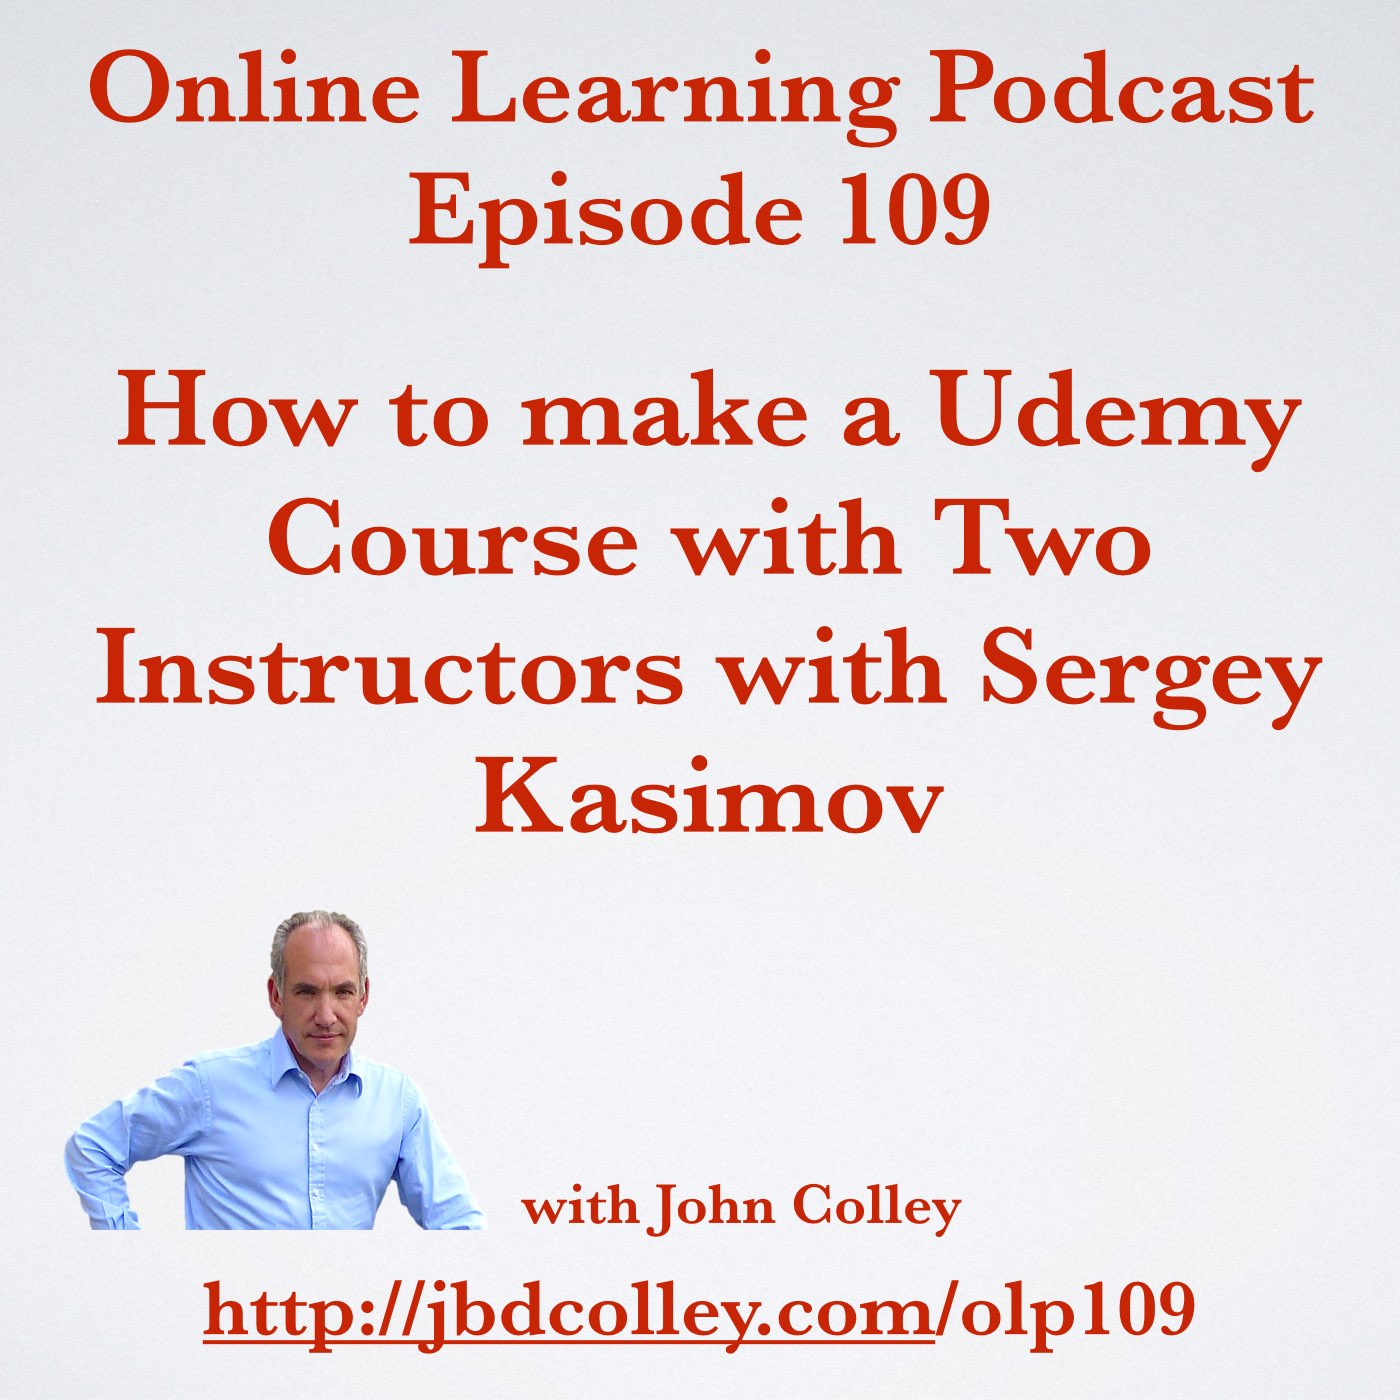 OLP109 How to make a Udemy Course with Two Instructors with Sergey Kasimov